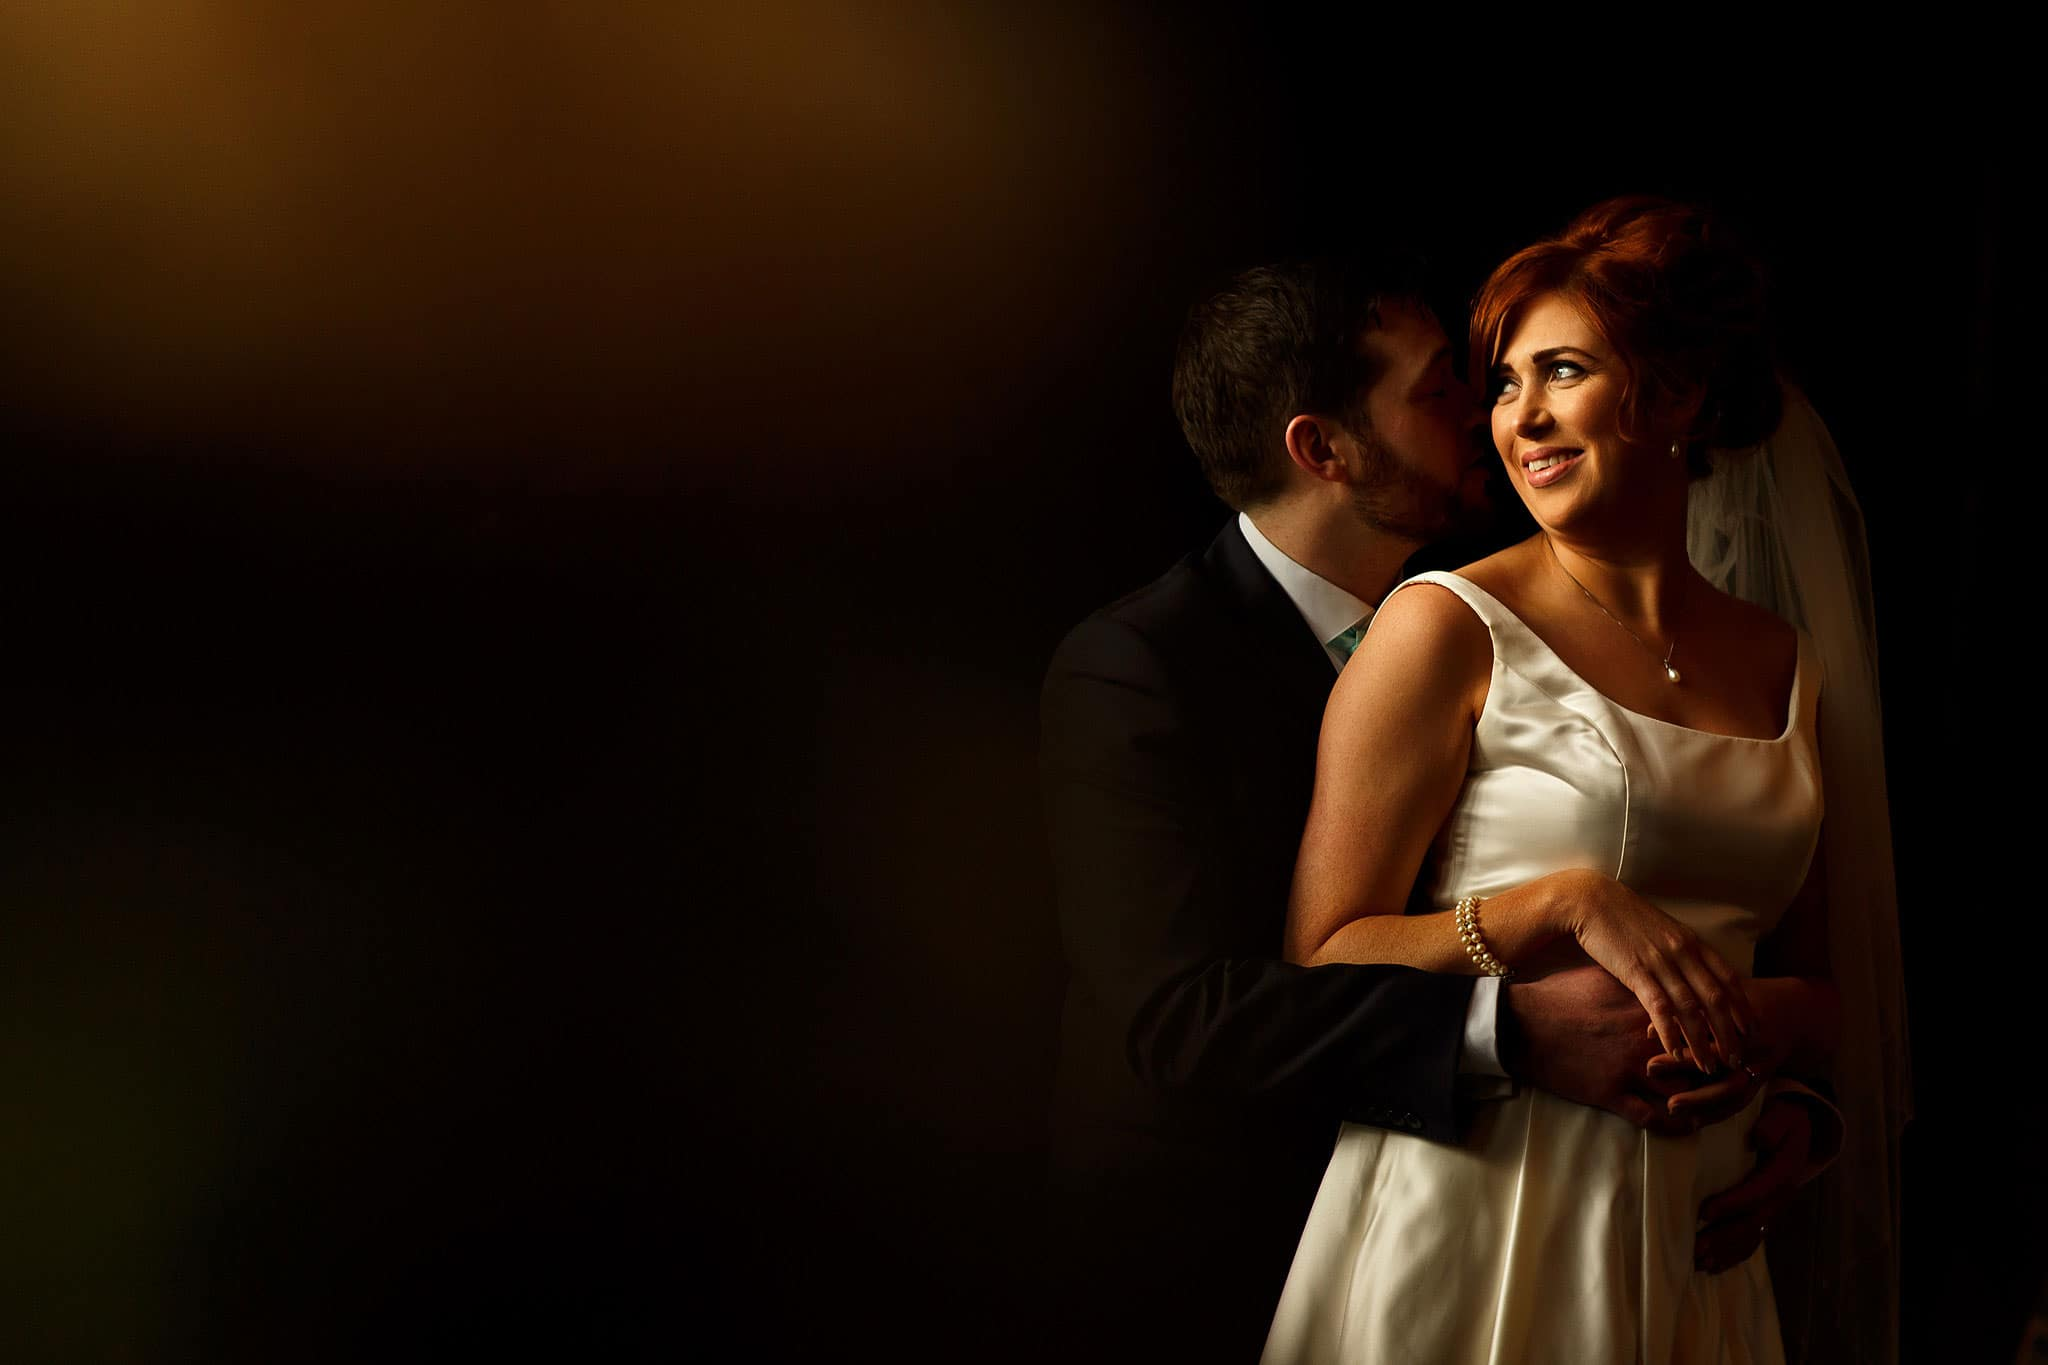 Bride with red hair and groom wedding portraits taken inside the Great Hall at Oakwell Hall